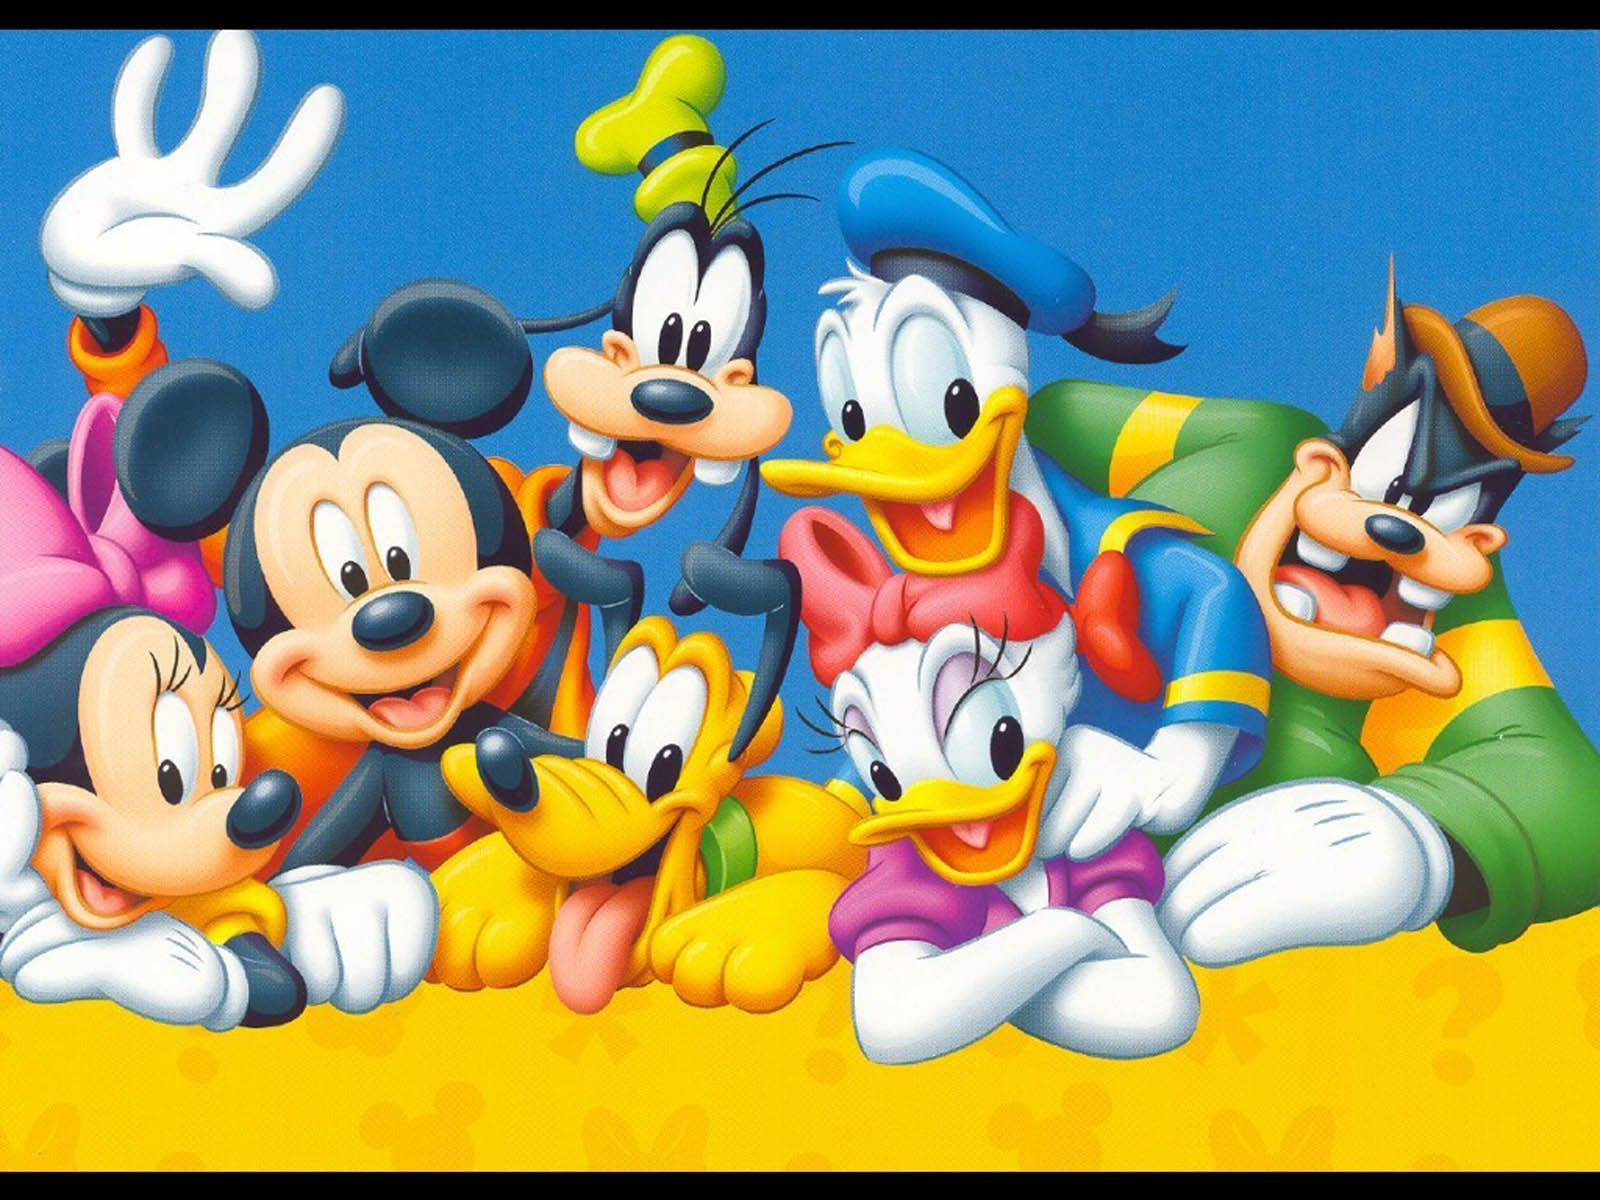 Mickey Mouse Wallpapers Mickey Mouse Desktop Wallpapers Mickey Mouse 1600x1200